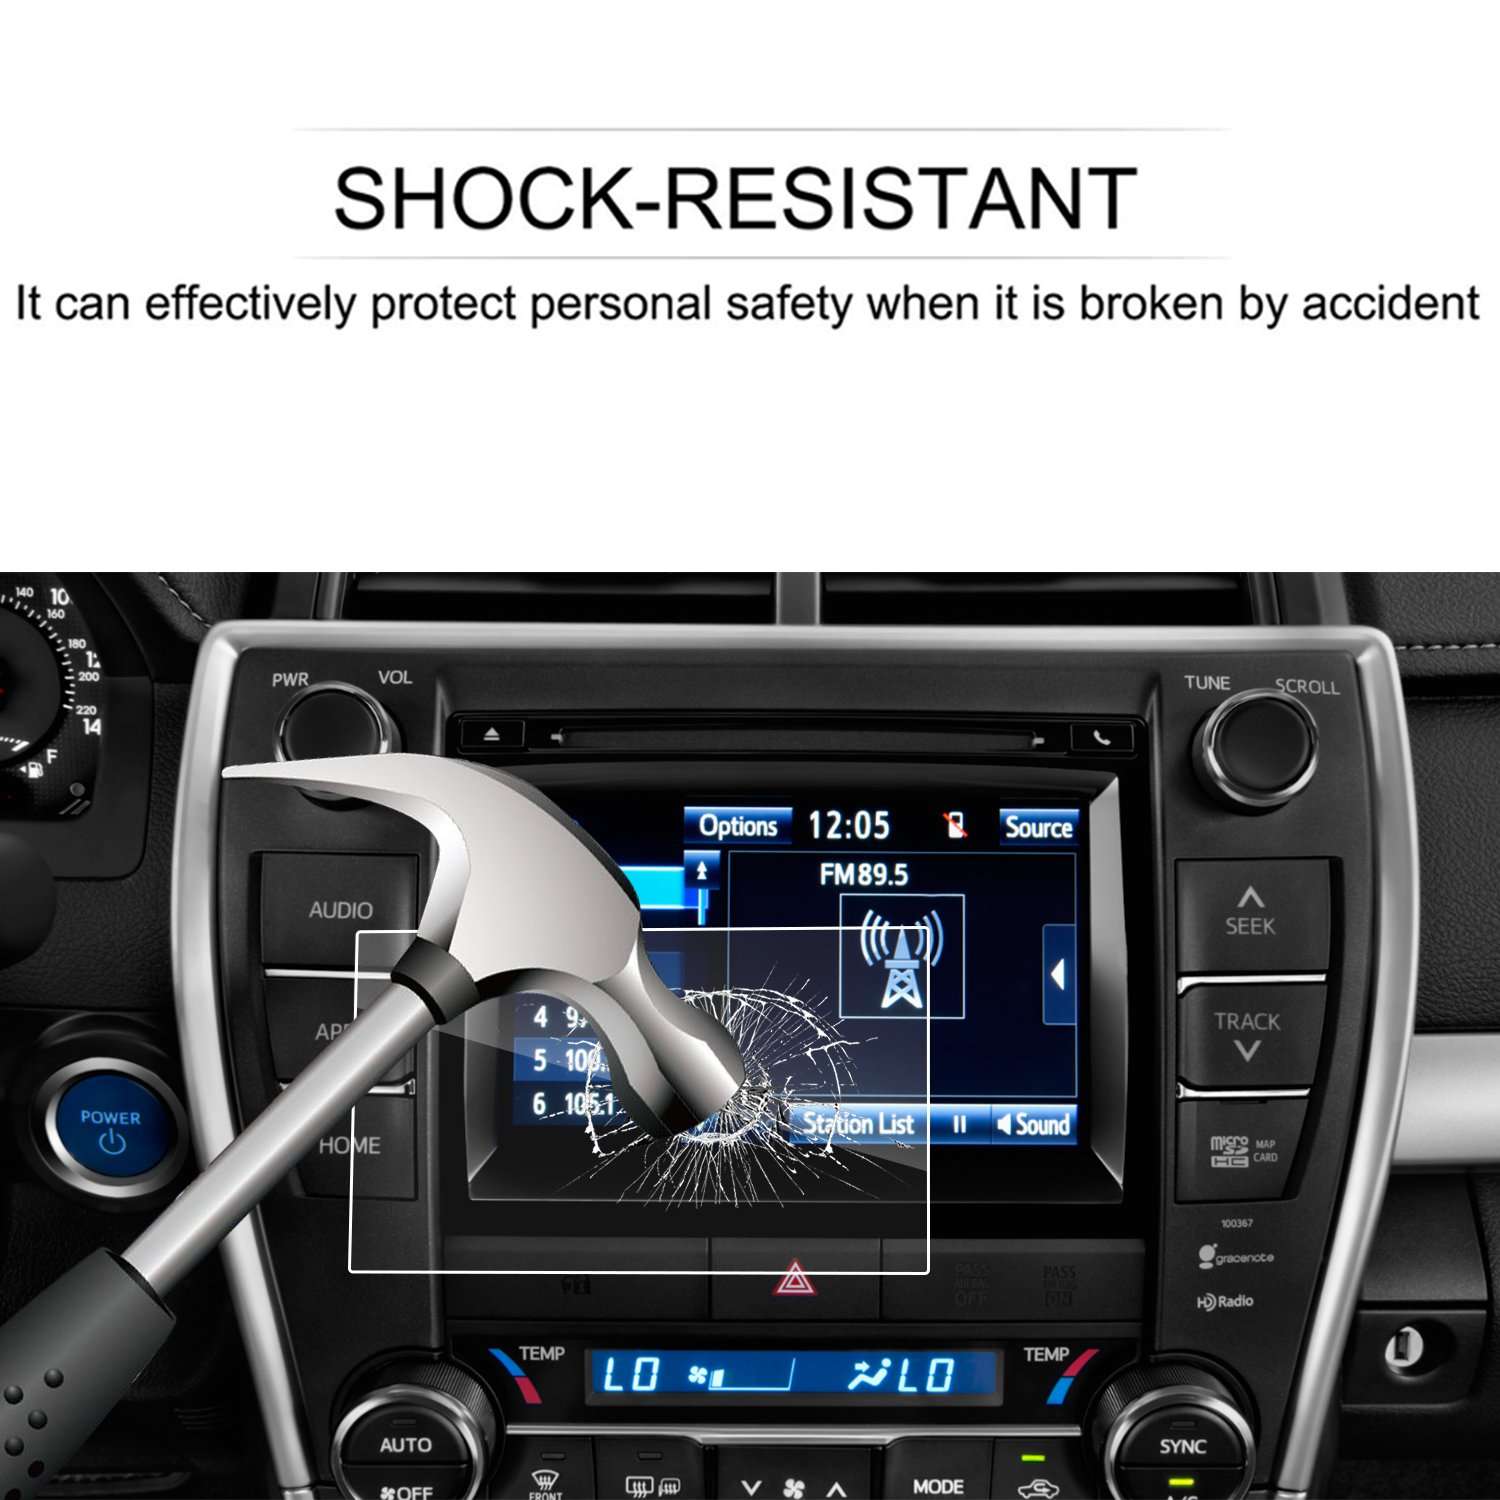 Tempered Glass Infotainment Center Touch Screen Protector Anti Scratch High Clarity LFOTPP Toyota Camry Entune 7 Inch 2015-2017 Car Navigation Screen Protector, 9H